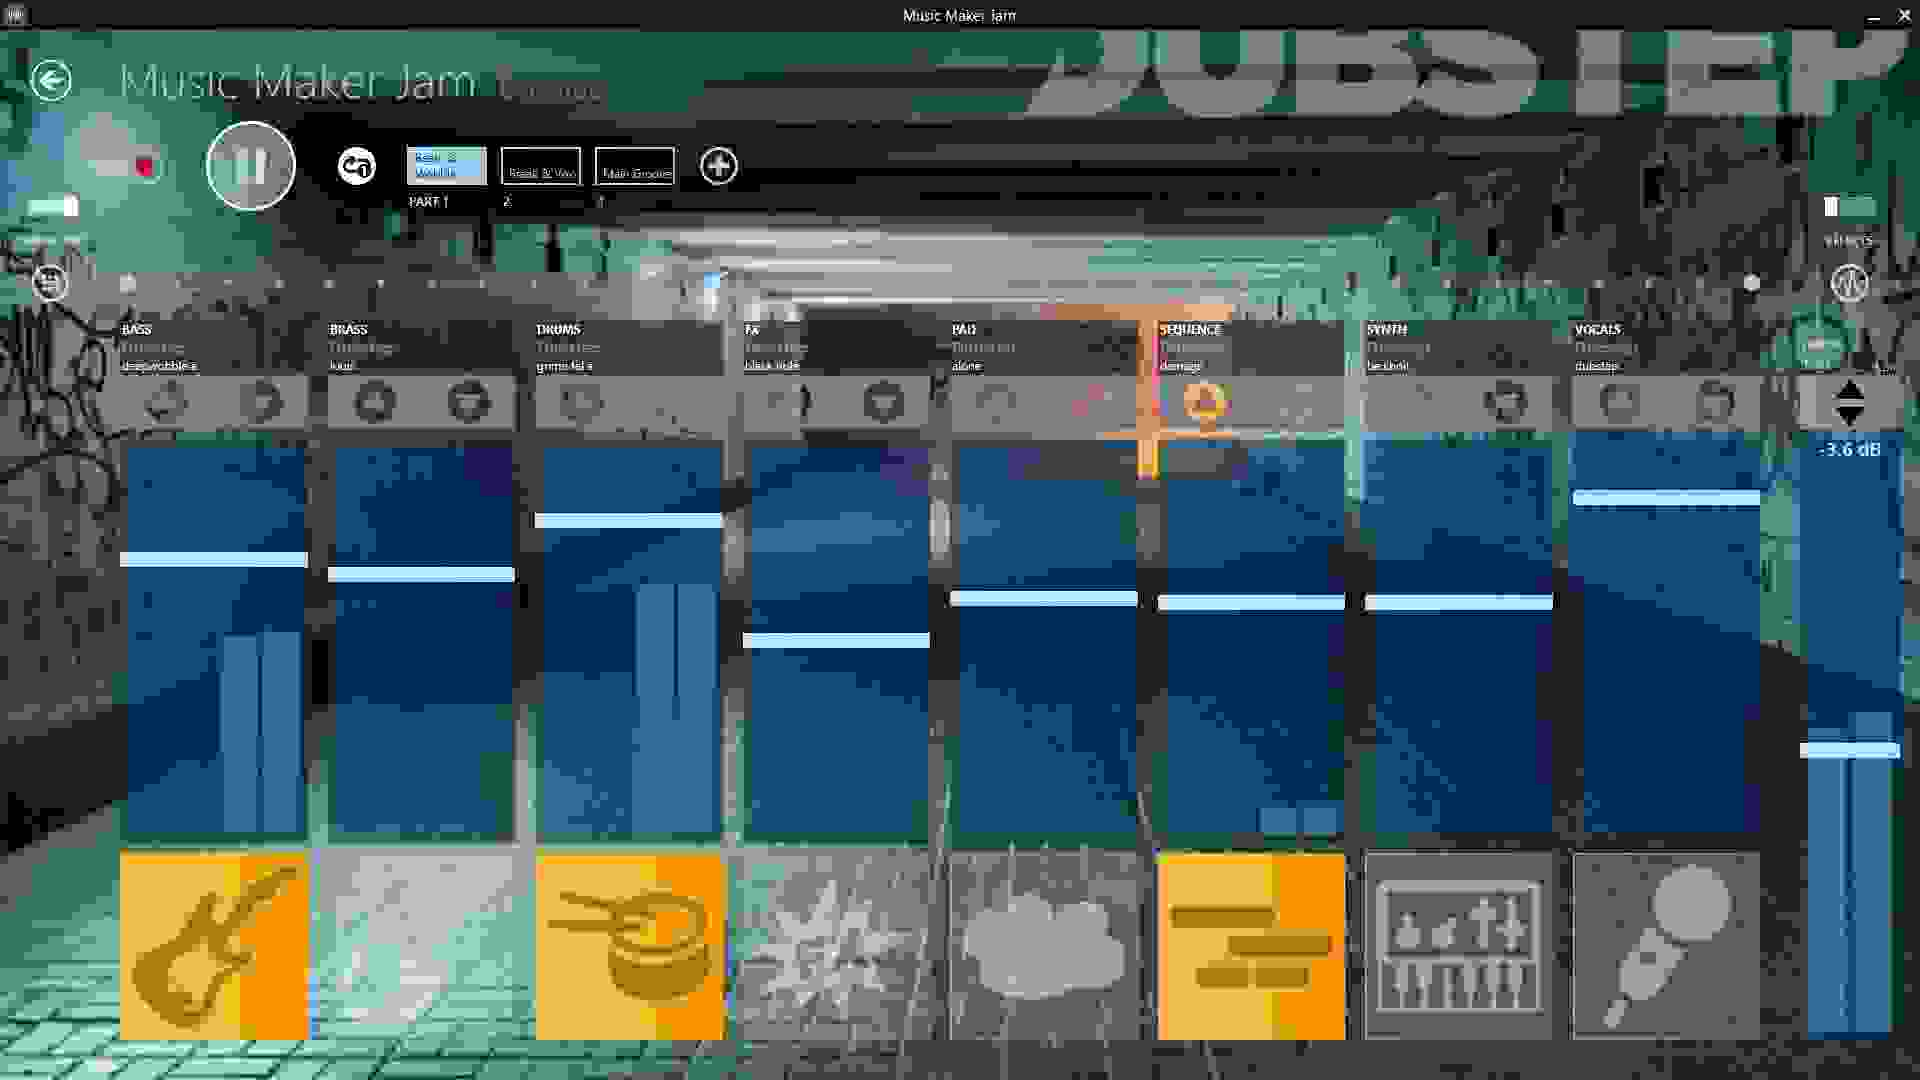 A screenshot of the Music Maker Jam app.